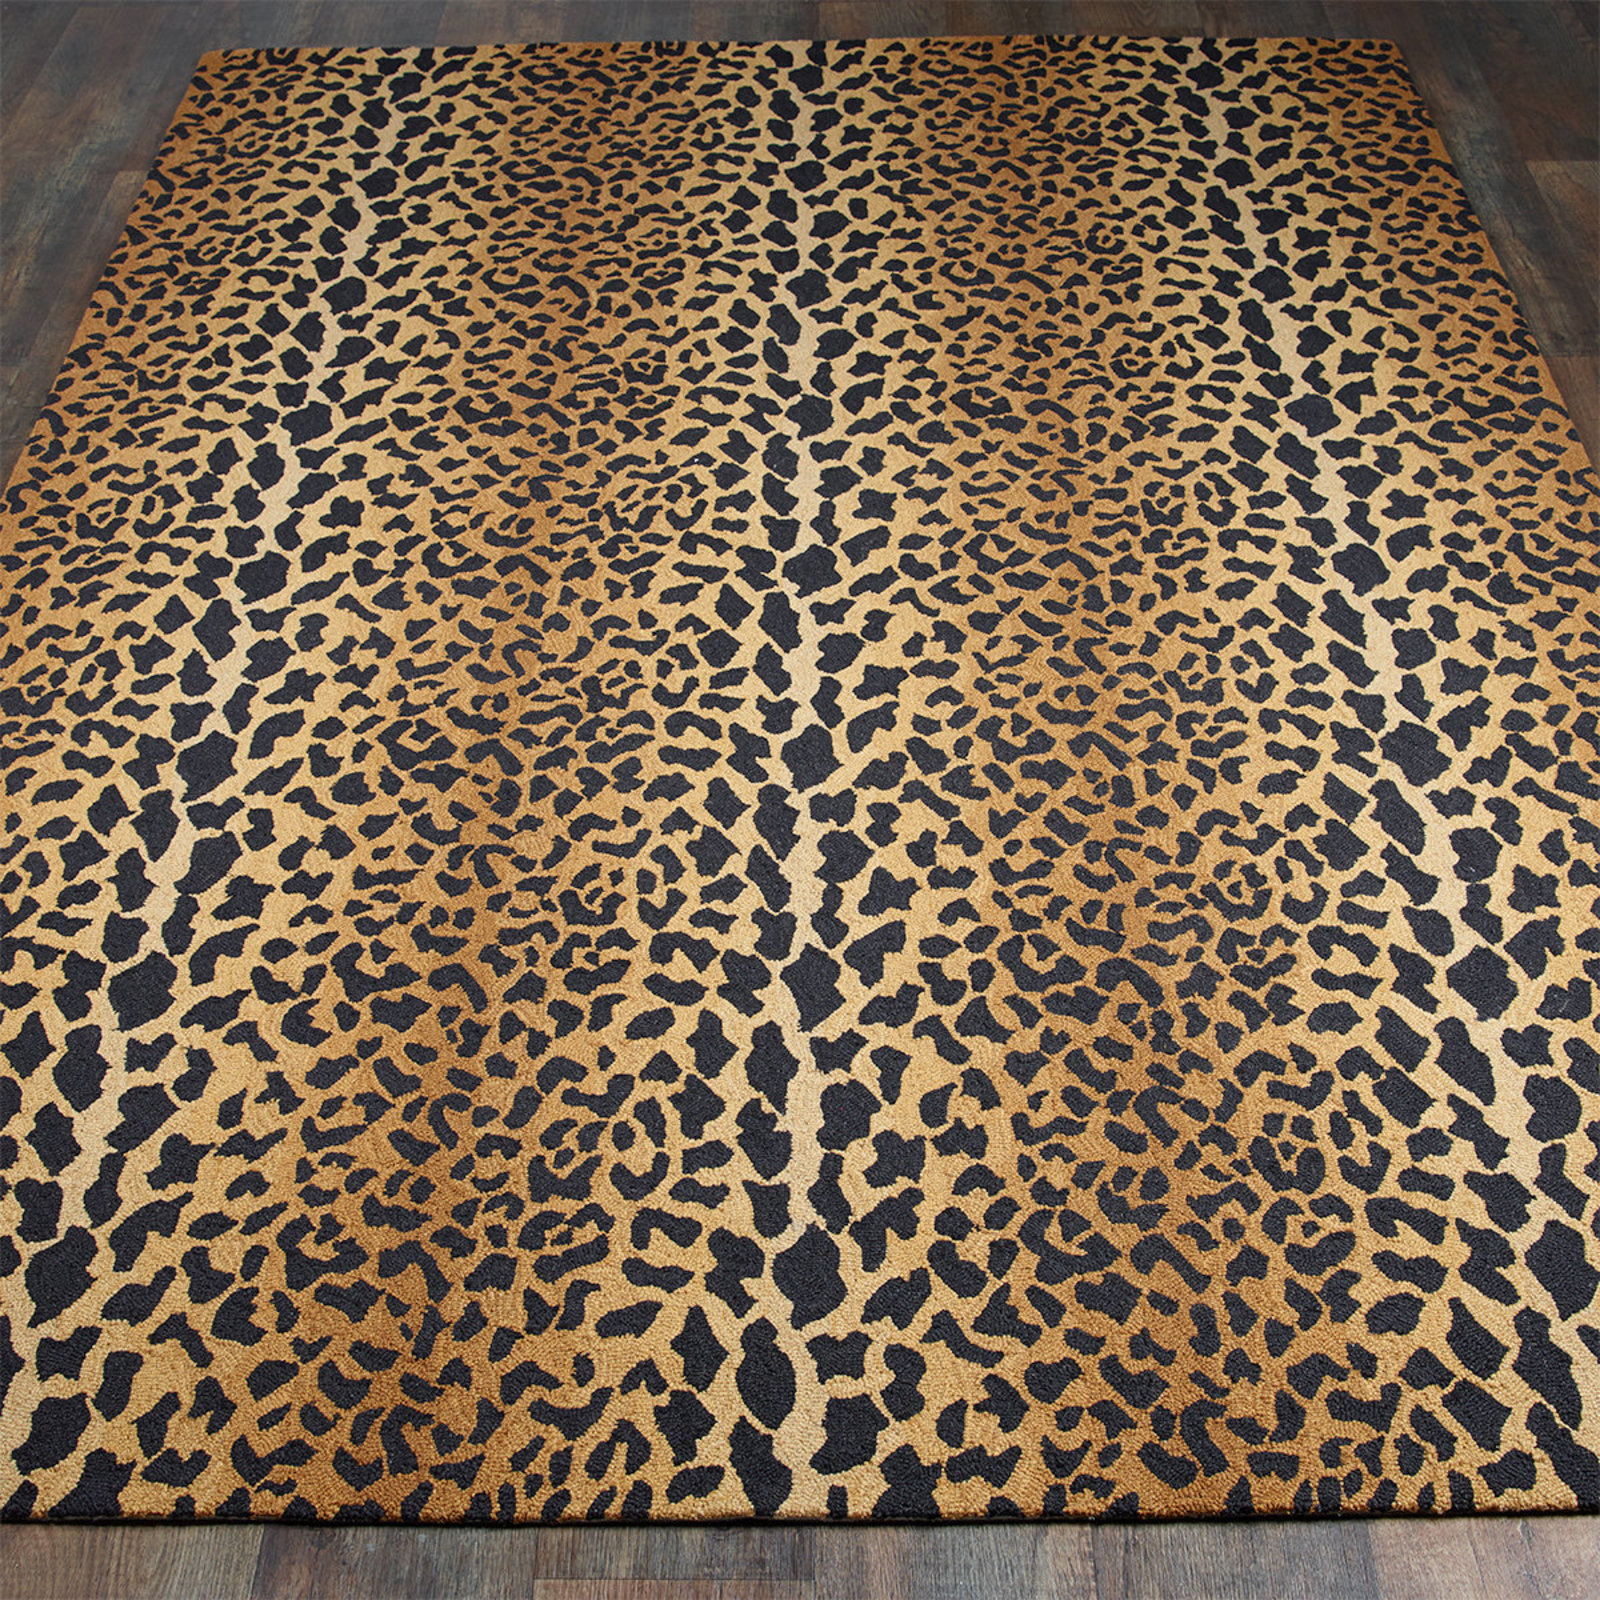 wool leopard rug tan_black TCNDGLE